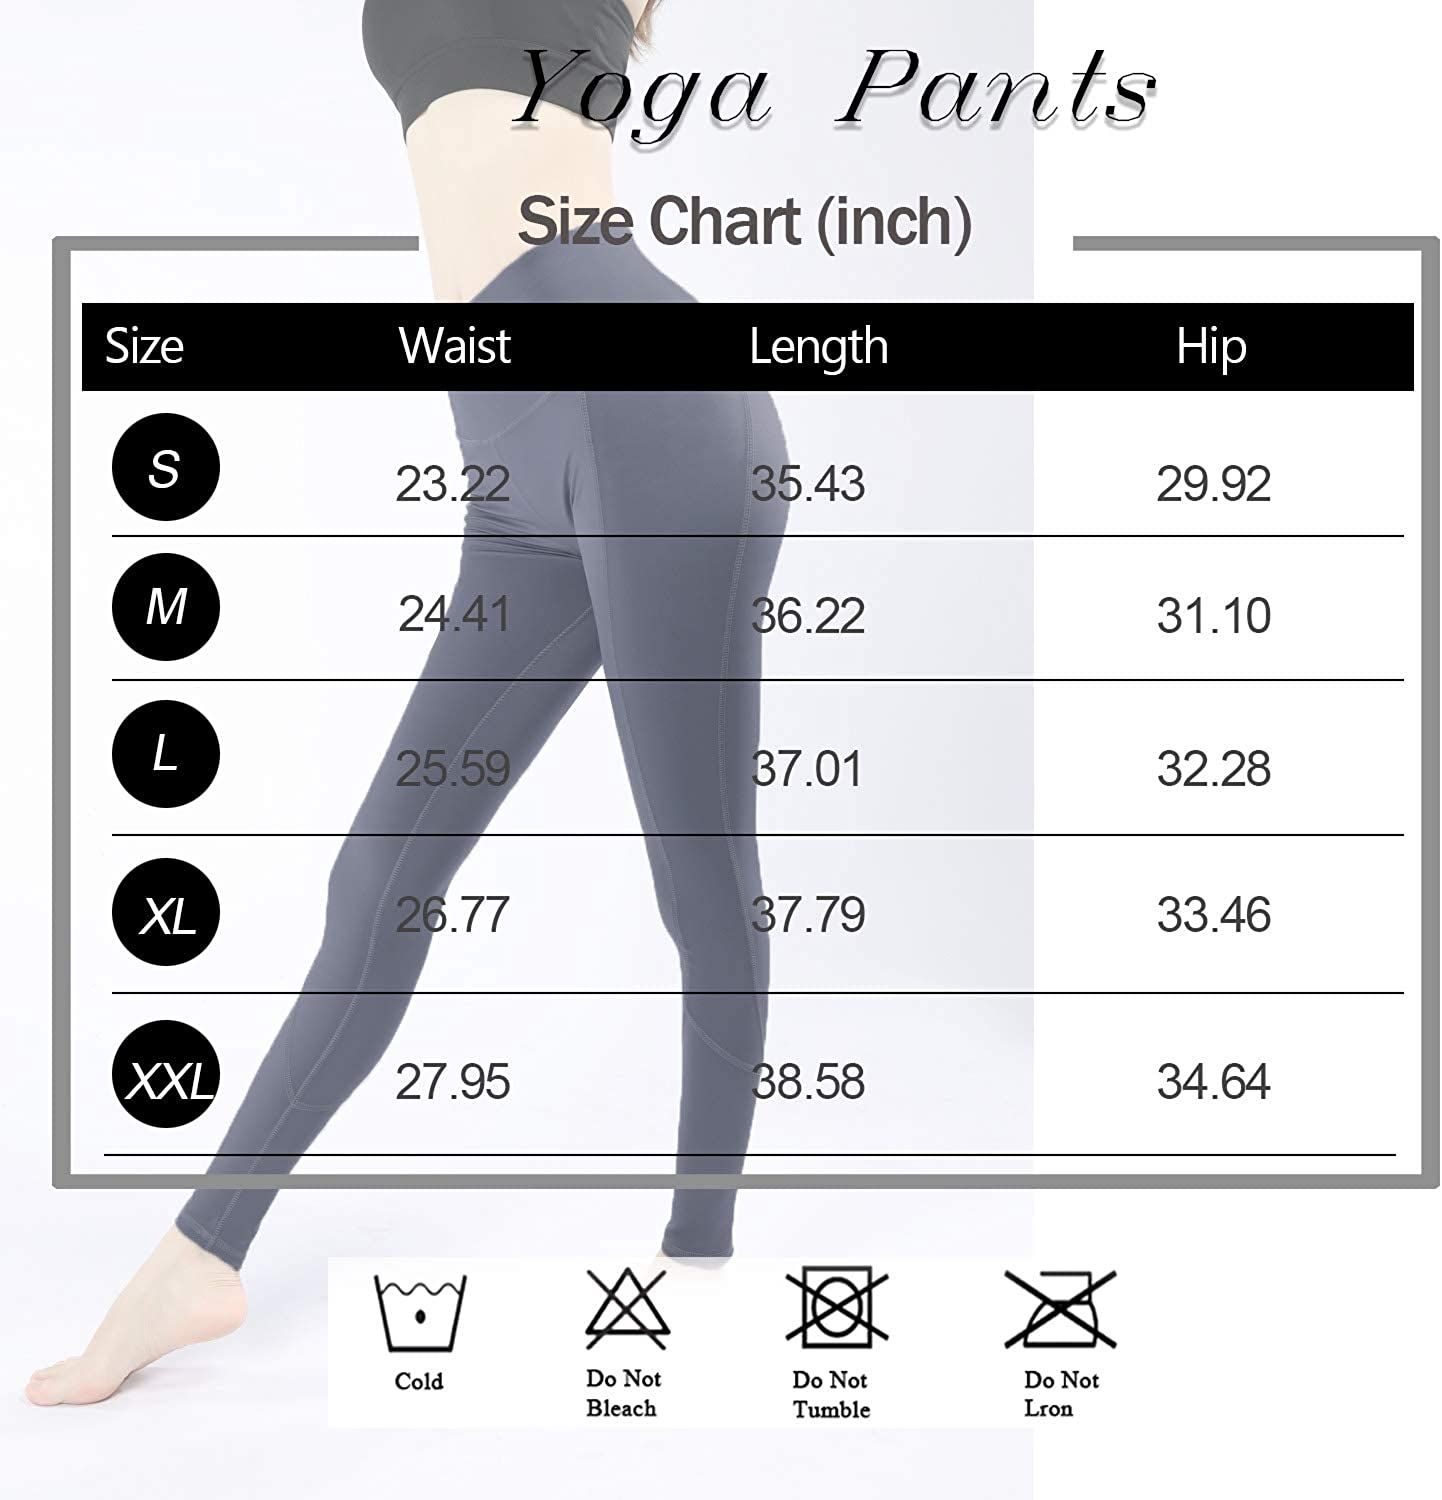 Hirdou High Waist Yoga Pants with Pockets for Women Abdomen Tight Fitting,4 Way Stretch Sports Leggings